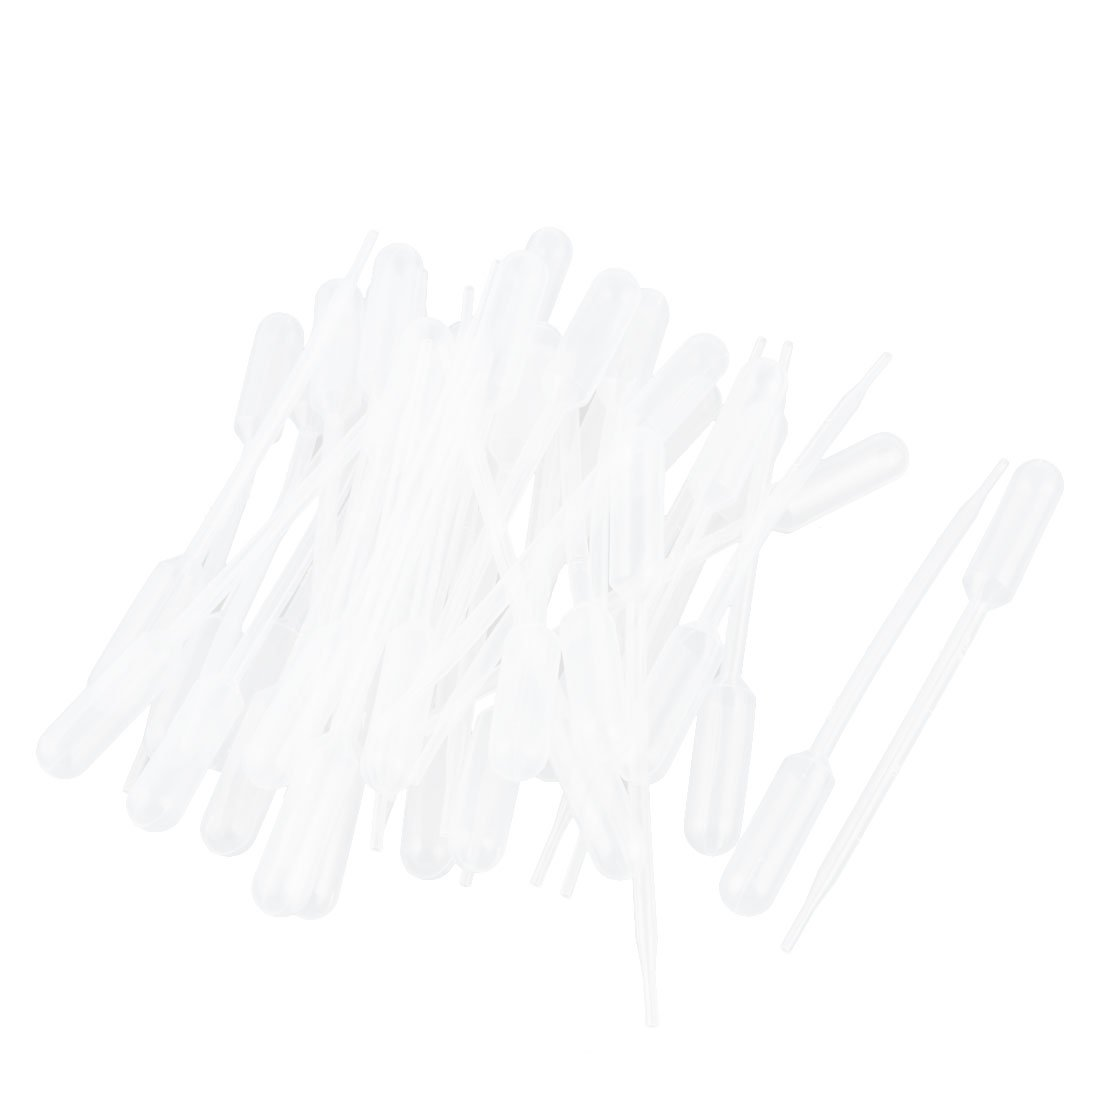 Makeup and Science Laboratory Graduated Pipettes Dropper for Essential Oils Eathtek 100PCS 3ML Disposable Plastic Transfer Pipettes